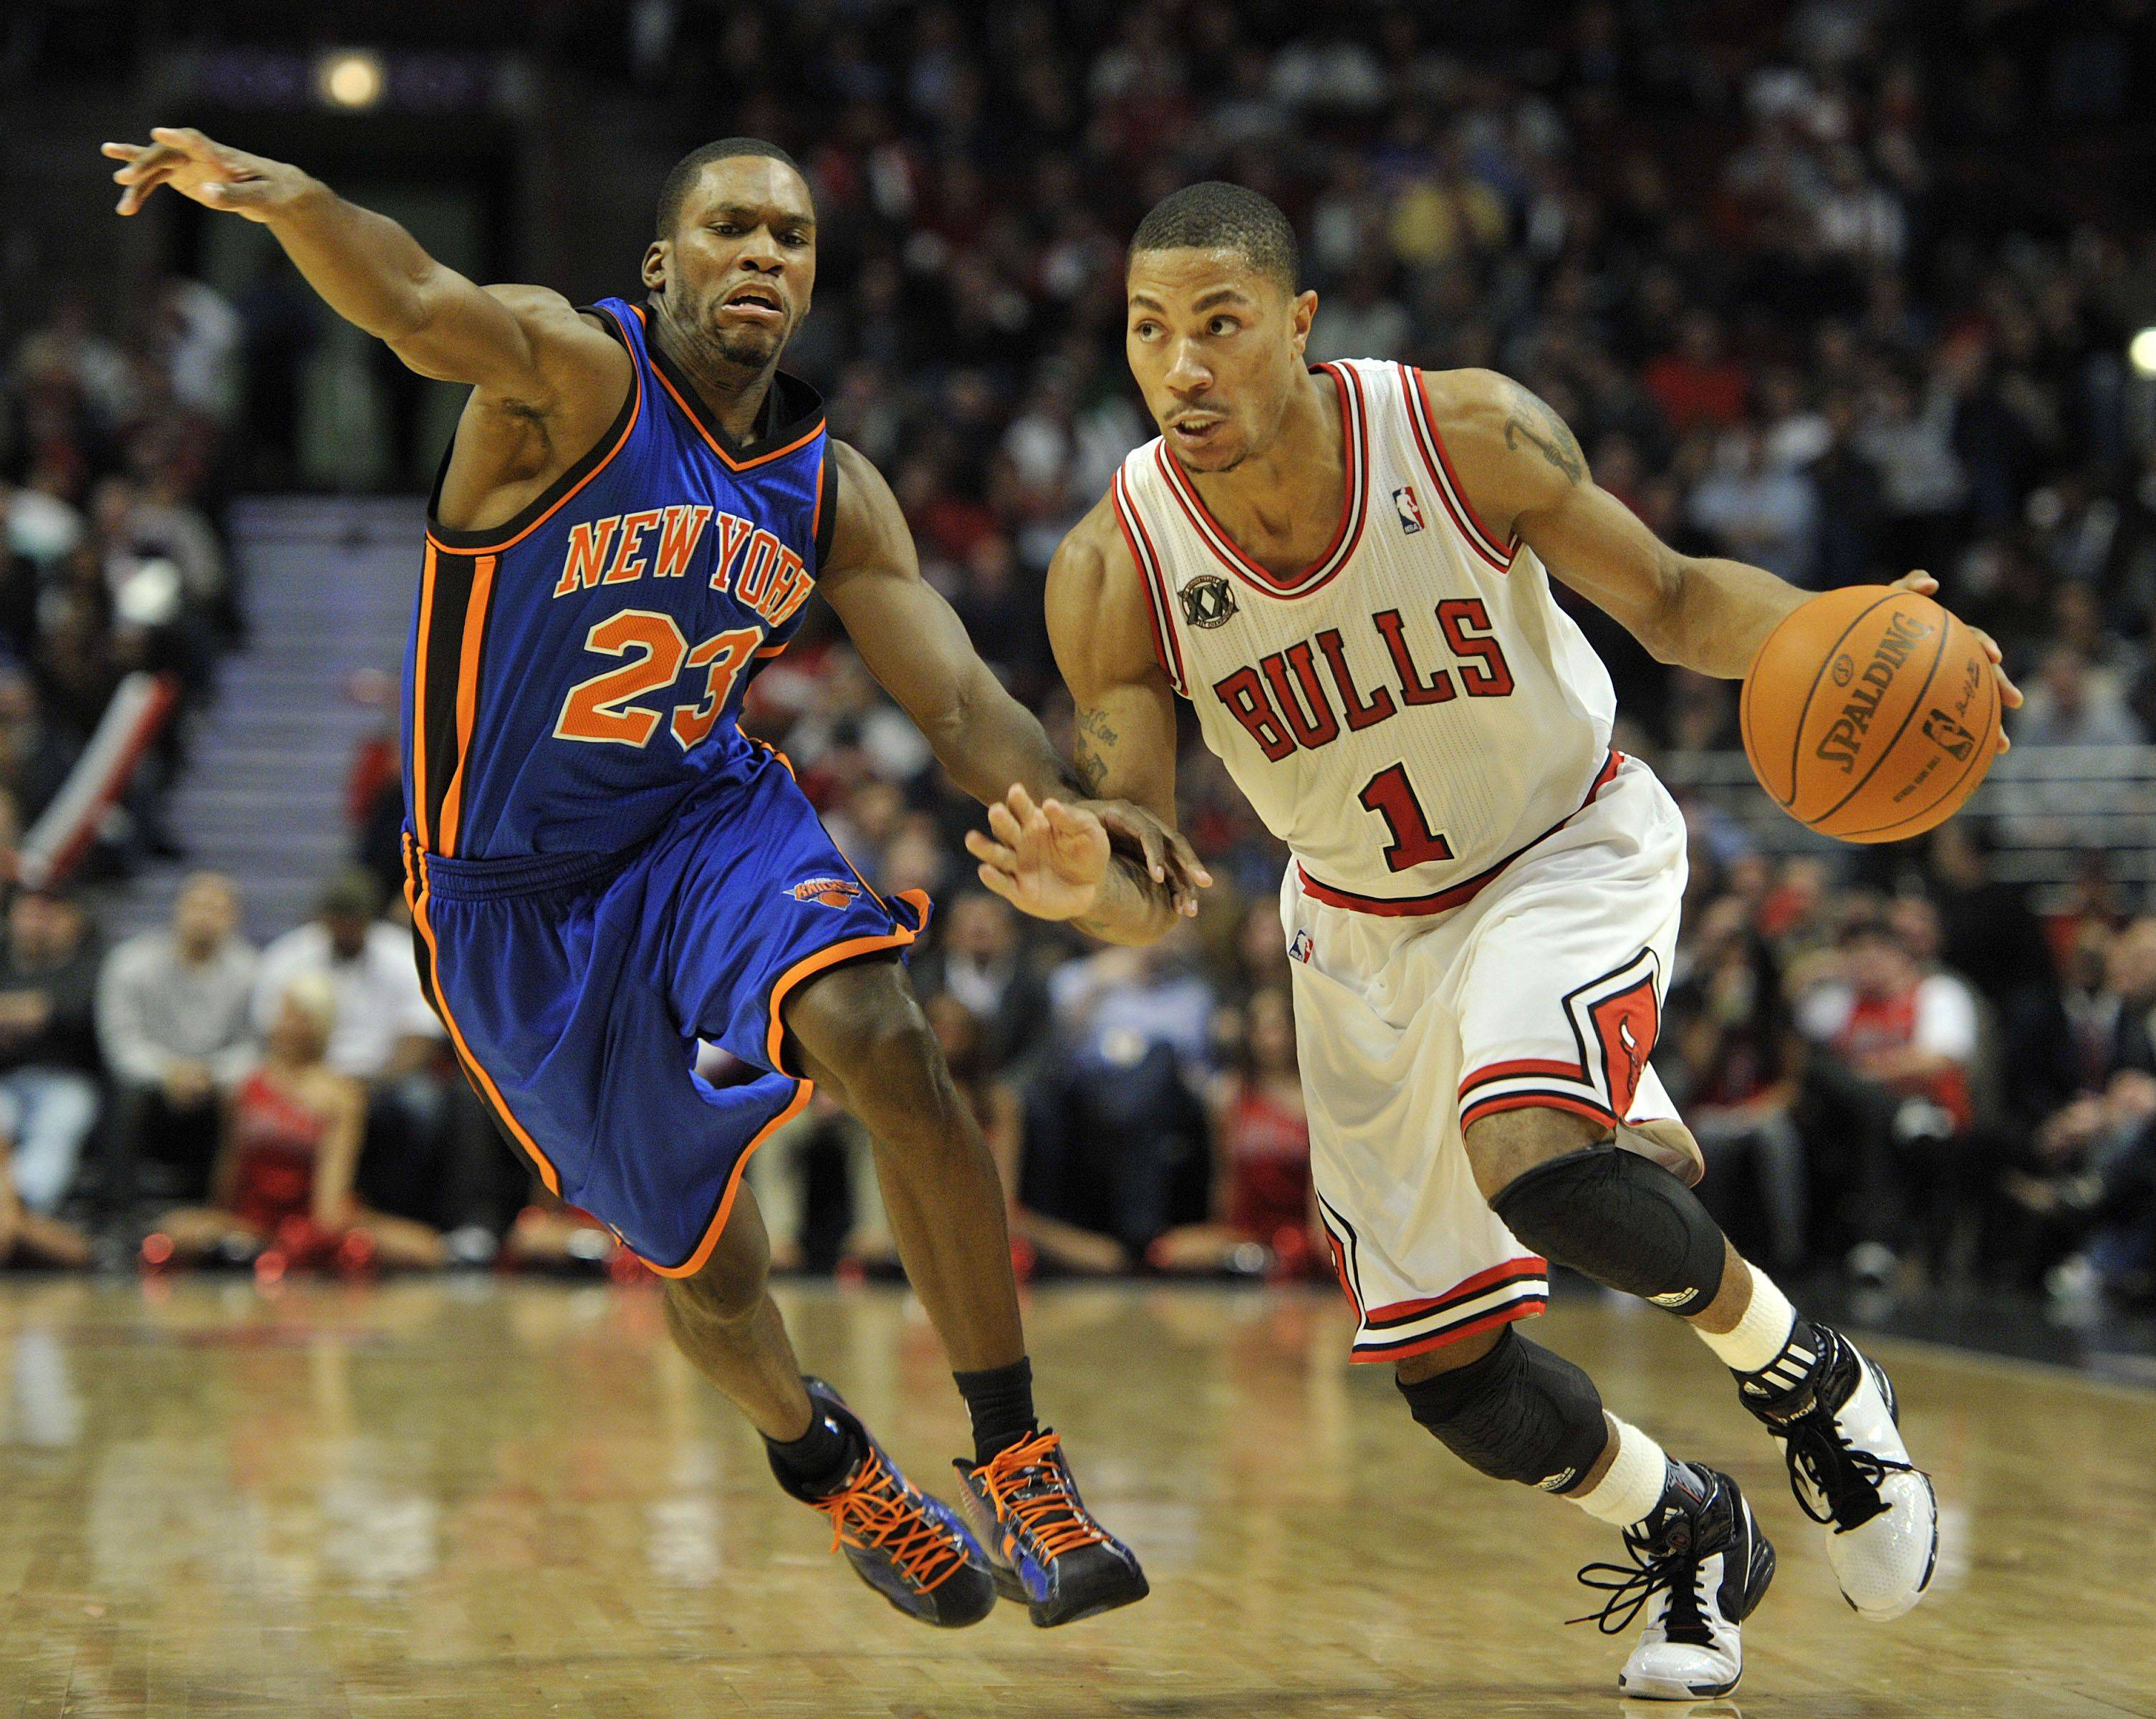 Derrick Rose, driving to the basket past the Knicks' Toney Douglas on Thursday, wants to be the player his team can count on in the closing seconds.